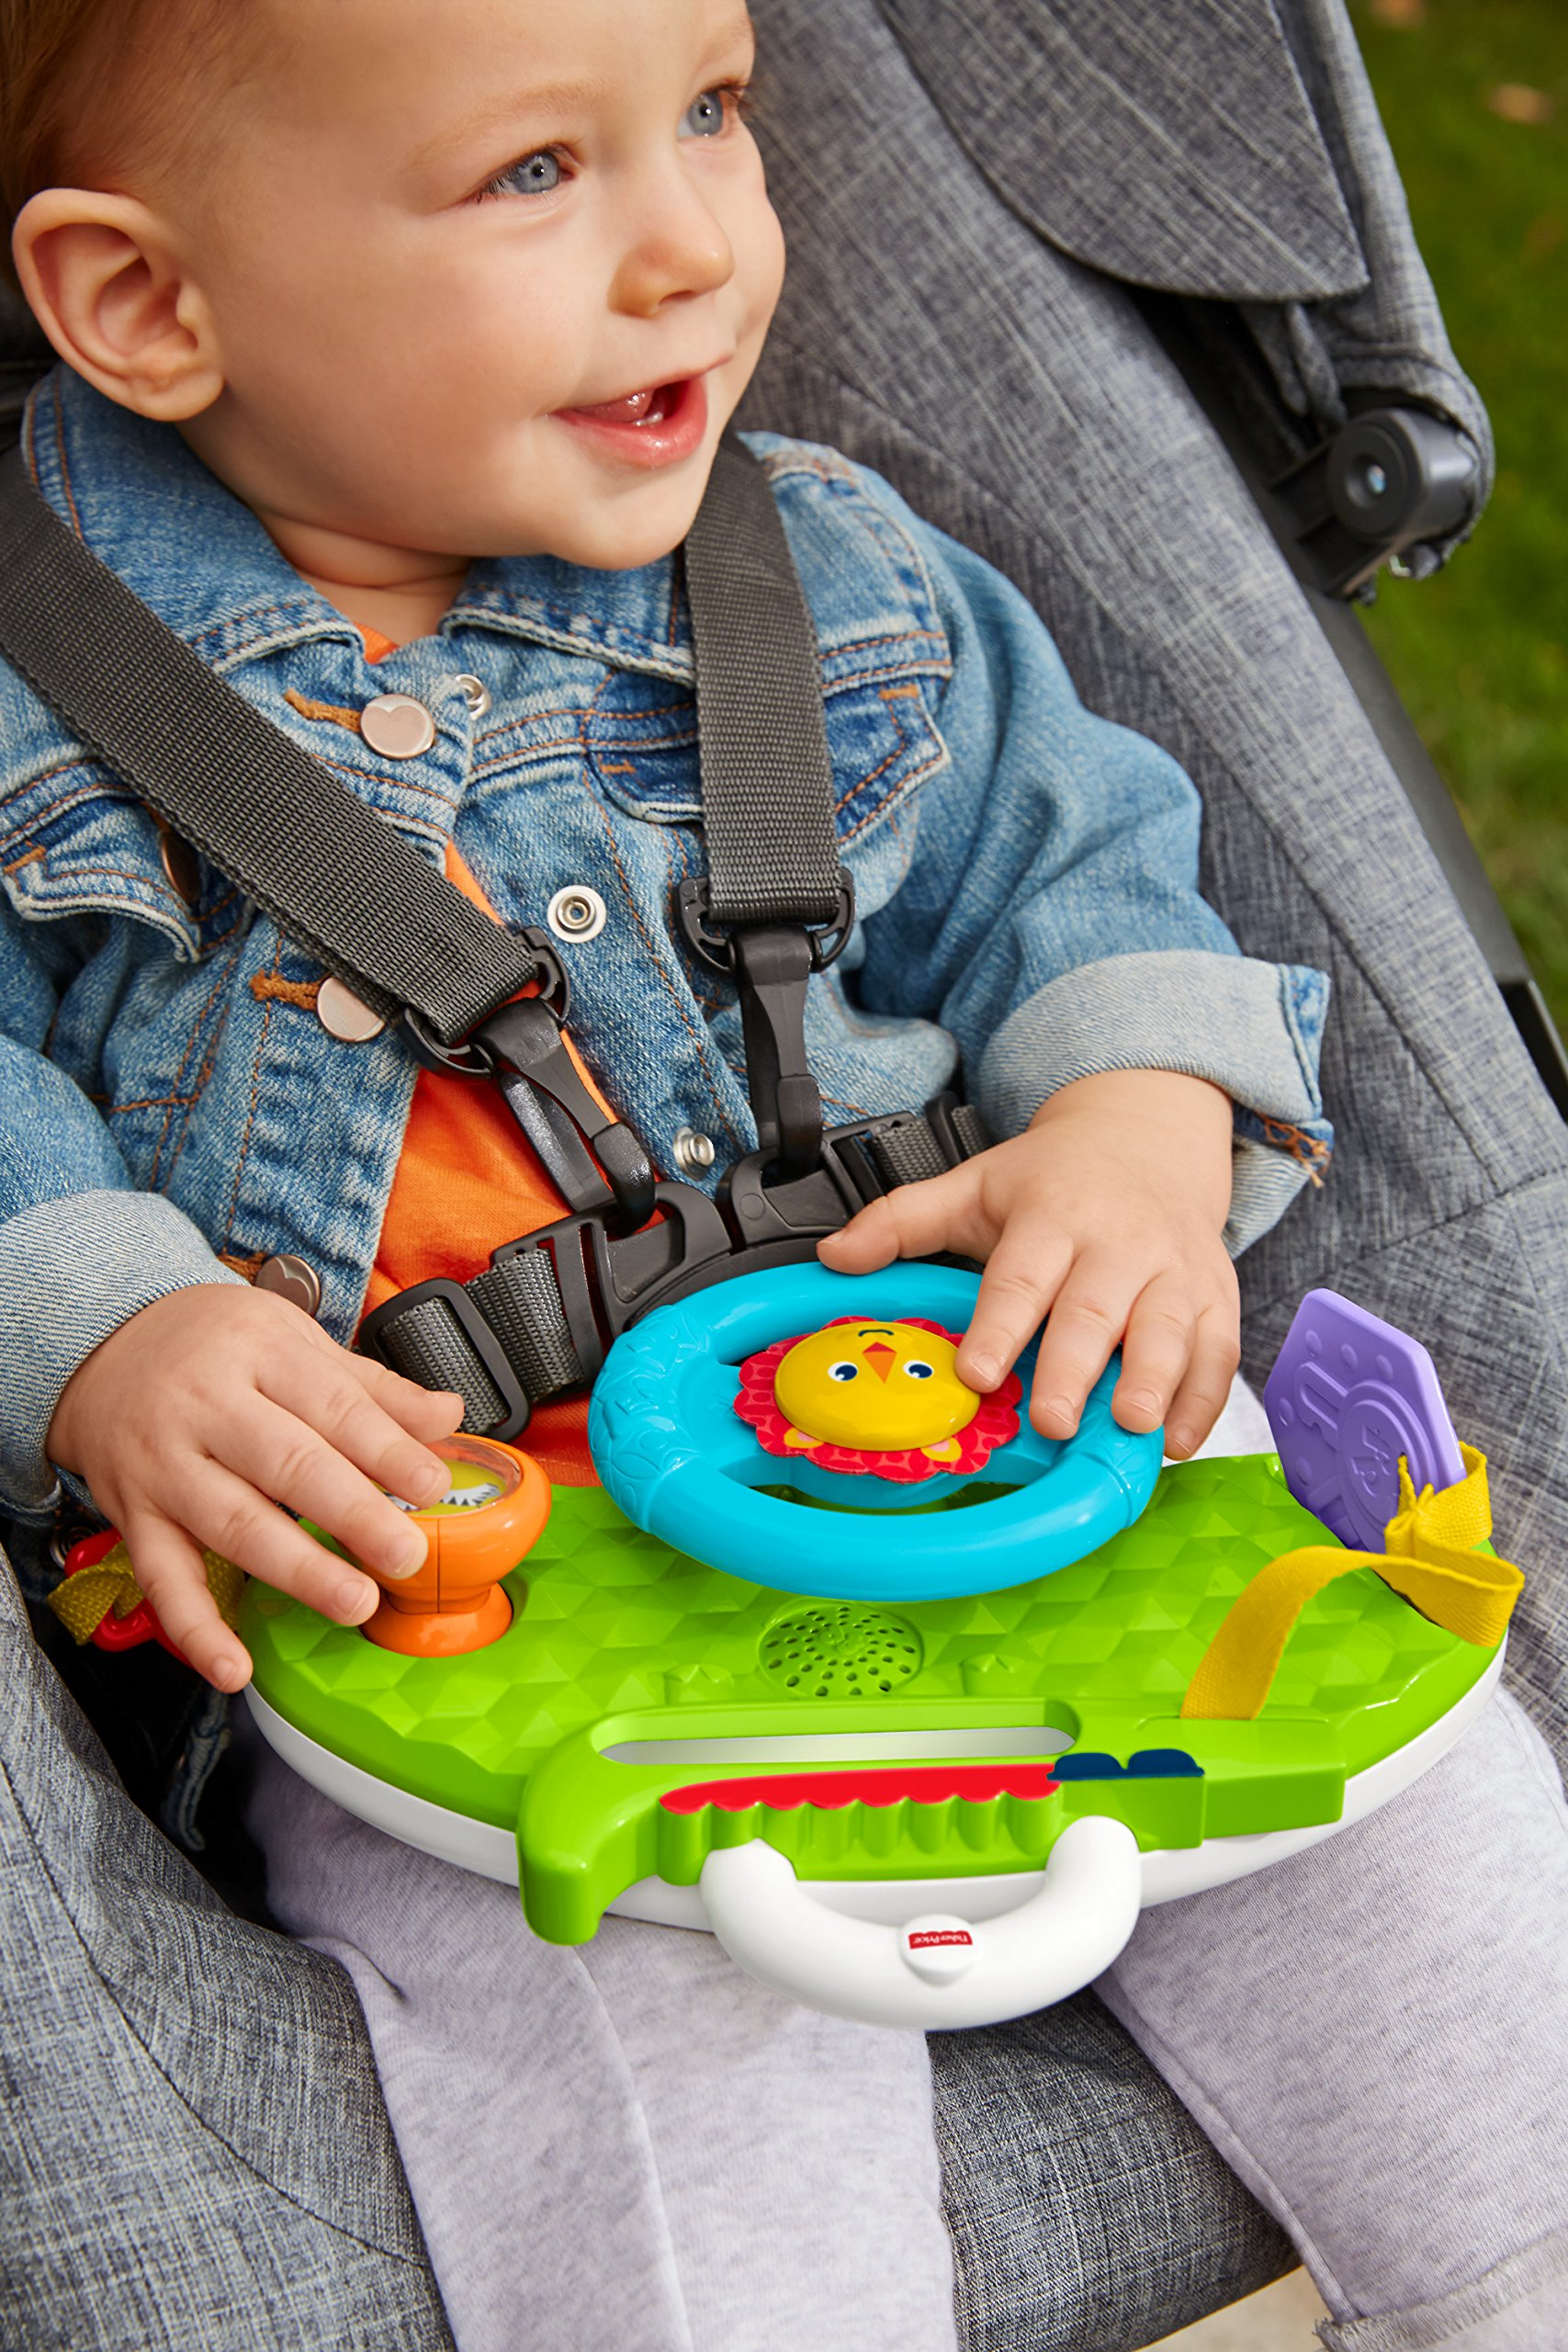 Fisher-Price Rolling and Strolling Dashboard, New-born Activity Toy with Music Sounds Fisher-Price  Attaches to stroller for playtime on the go  Turn the lion steering wheel to hear short songs  Push the lion's face for silly sound effects (Beep beep!) 5